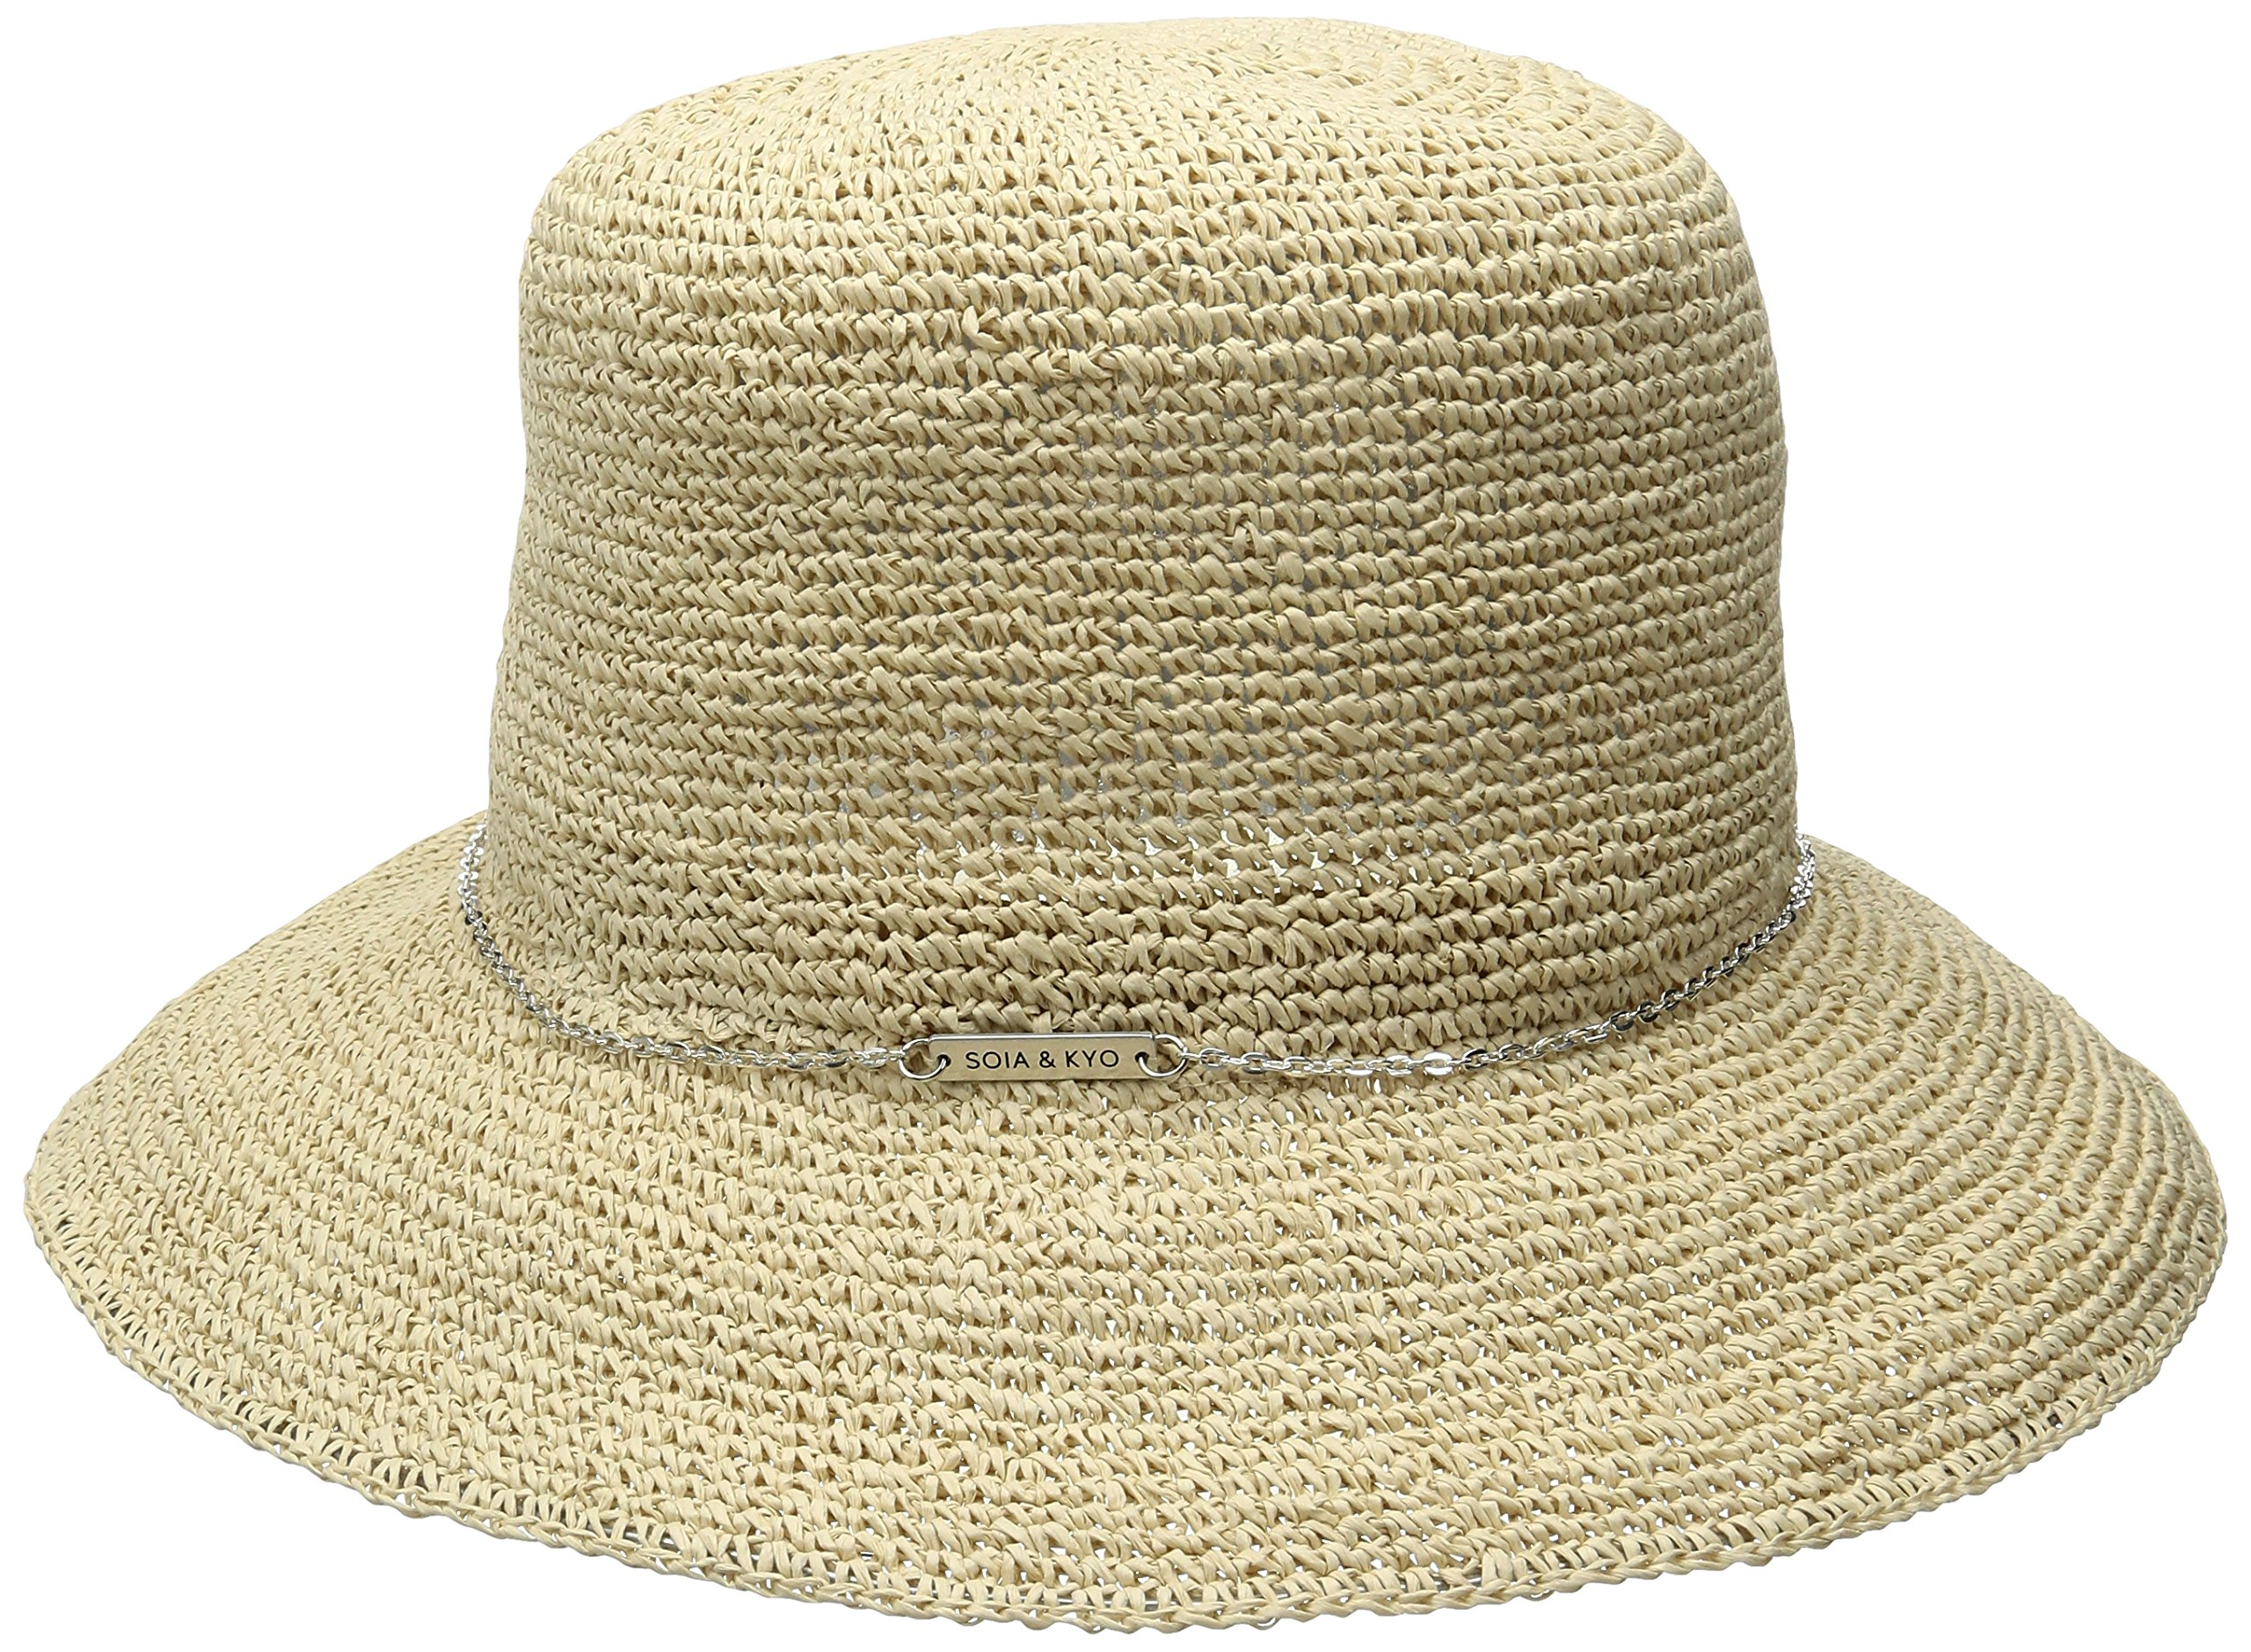 Soia & Kyo Women's Dorothea Wide Brim Crochet Hat with Chain Trim, Tan, One Size by Soia & Kyo (Image #1)